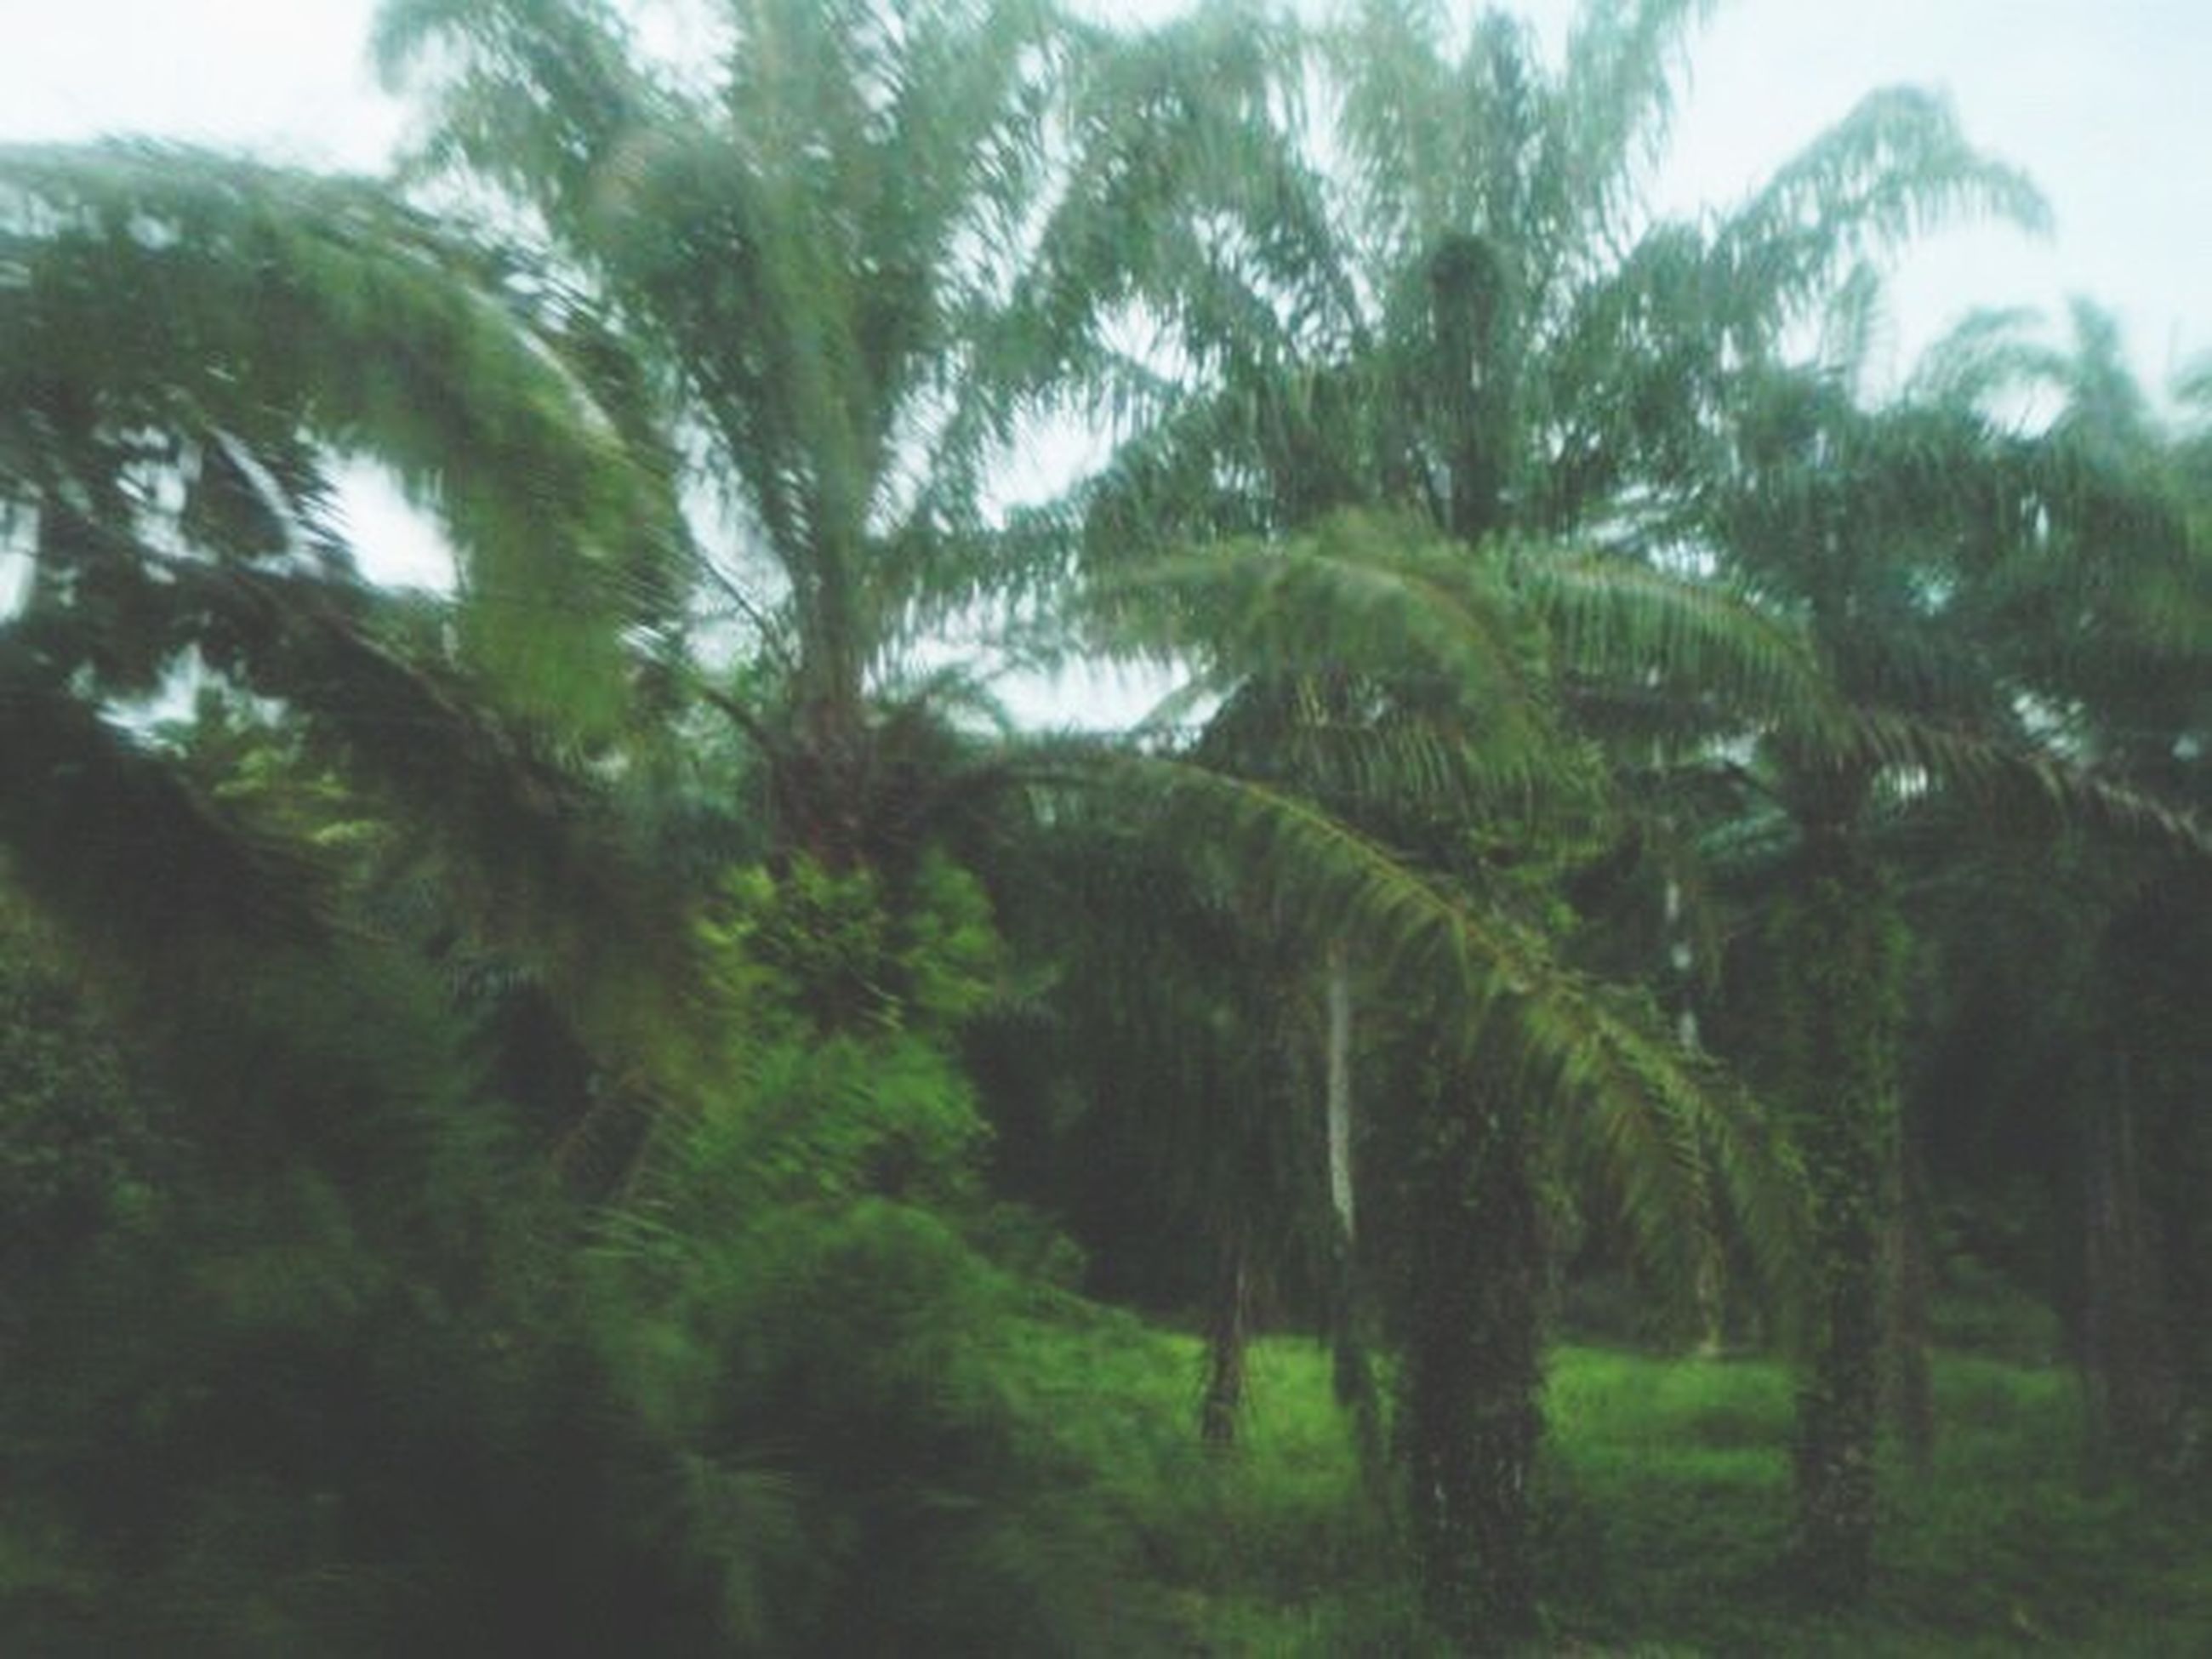 tree, growth, tranquility, green color, nature, tranquil scene, tree trunk, beauty in nature, scenics, forest, sky, branch, low angle view, day, growing, outdoors, palm tree, no people, plant, non-urban scene